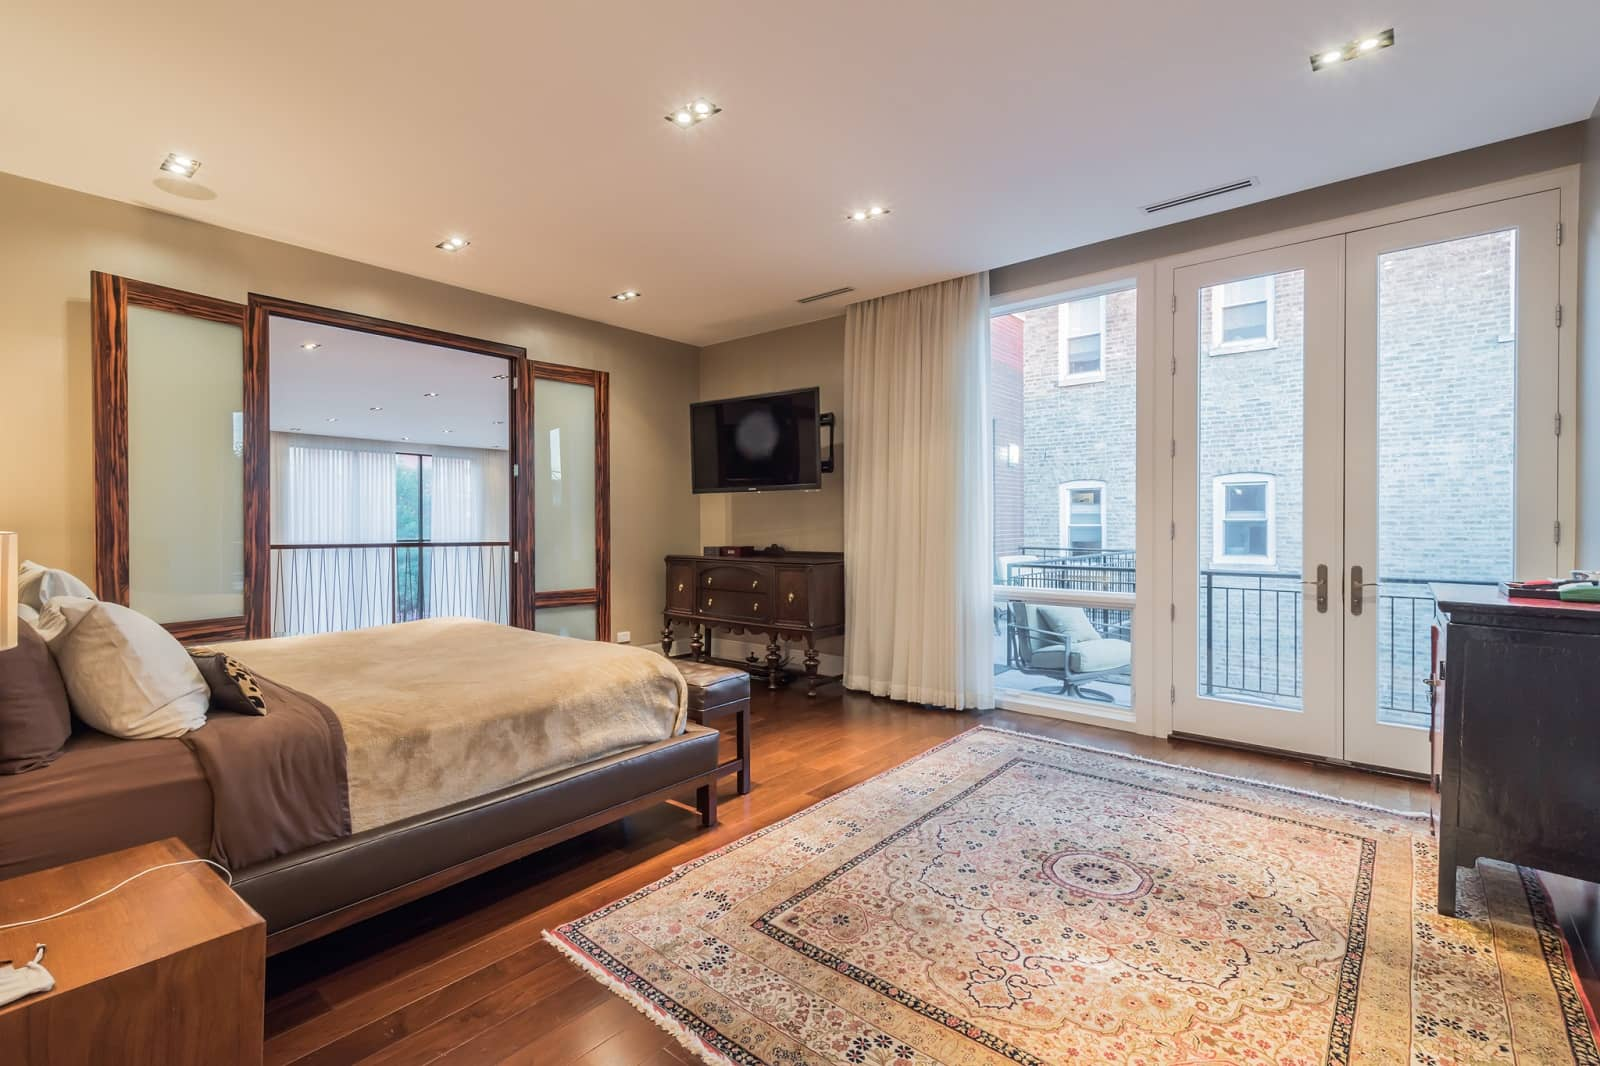 Real Estate Photography in Chicago - IL - USA - Bedroom View